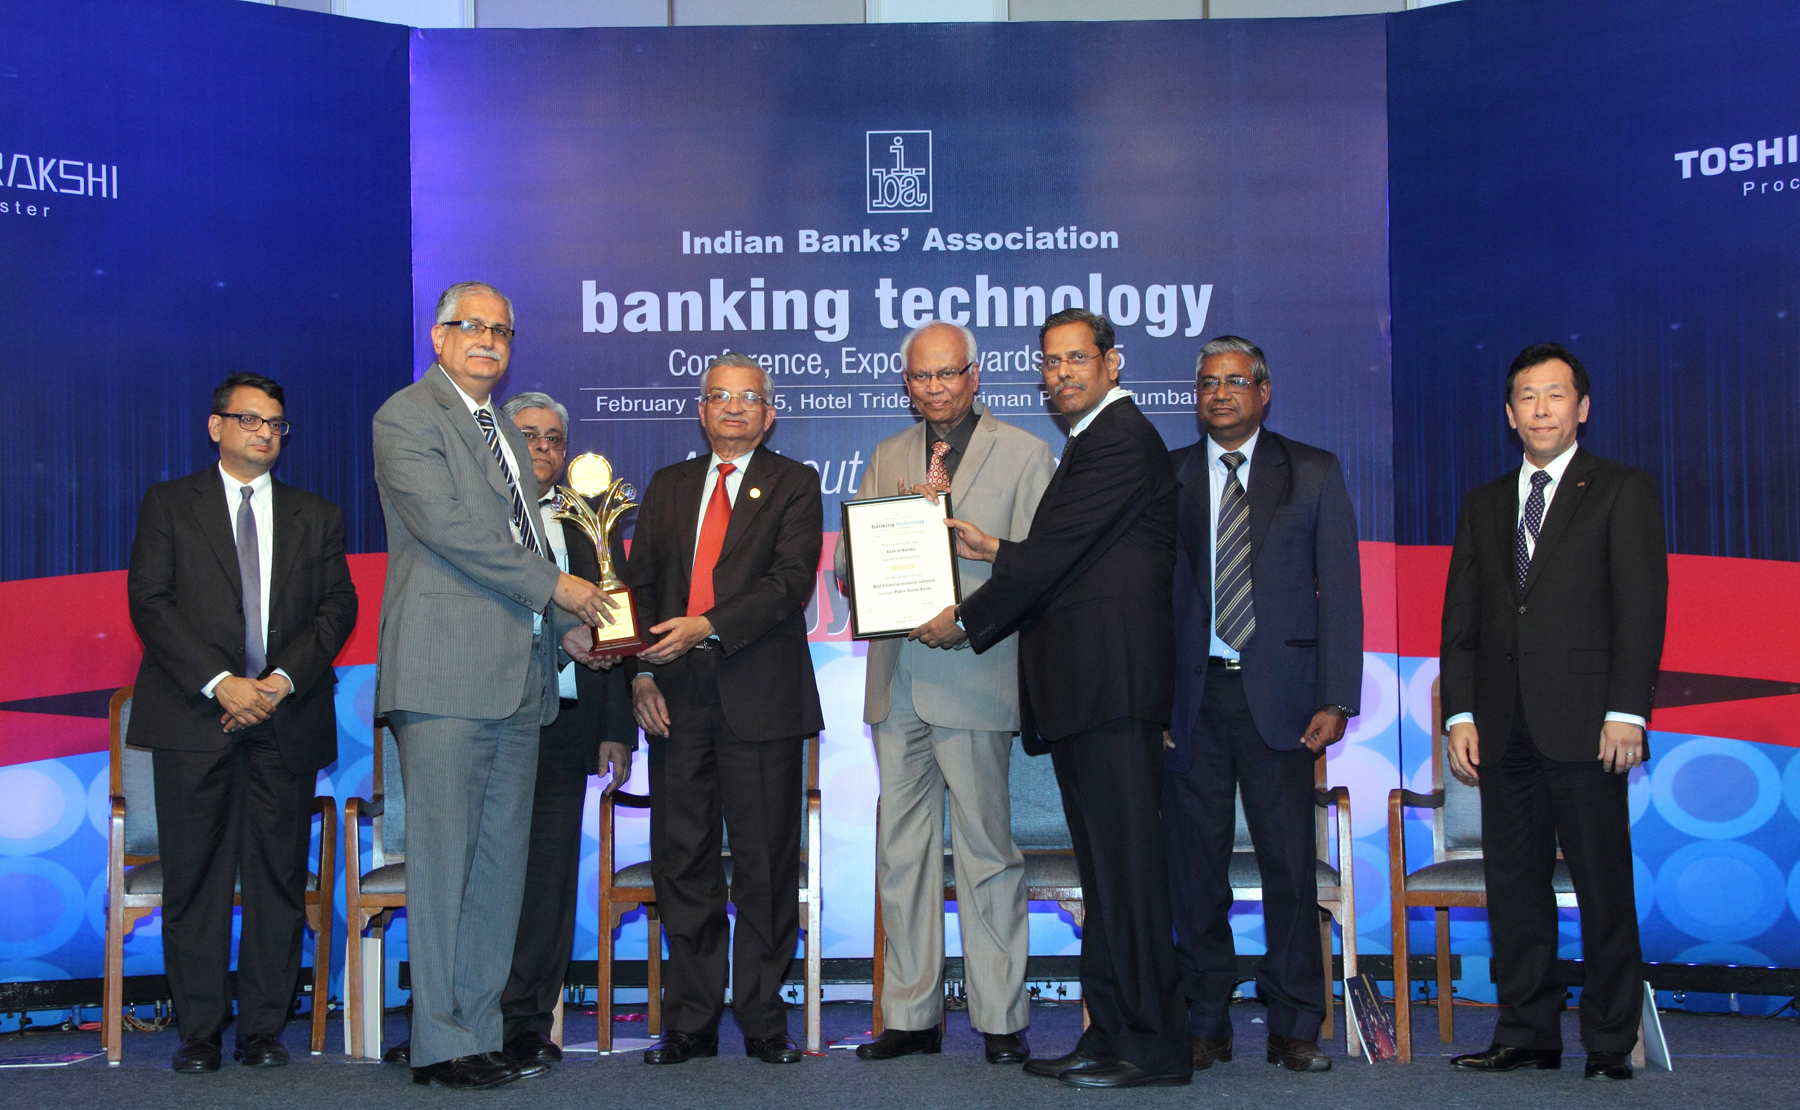 Shri Ranjan Dhawan, Managing Director & CEO, Bank of Baroda (left) and Shri S S Ghag, General Manager (IT) (right) is seen receiving The IBA Technology Award 2014-15 at the hands of Dr. Anil Kakodkar and Dr. Raghunath Mashelkar respectively